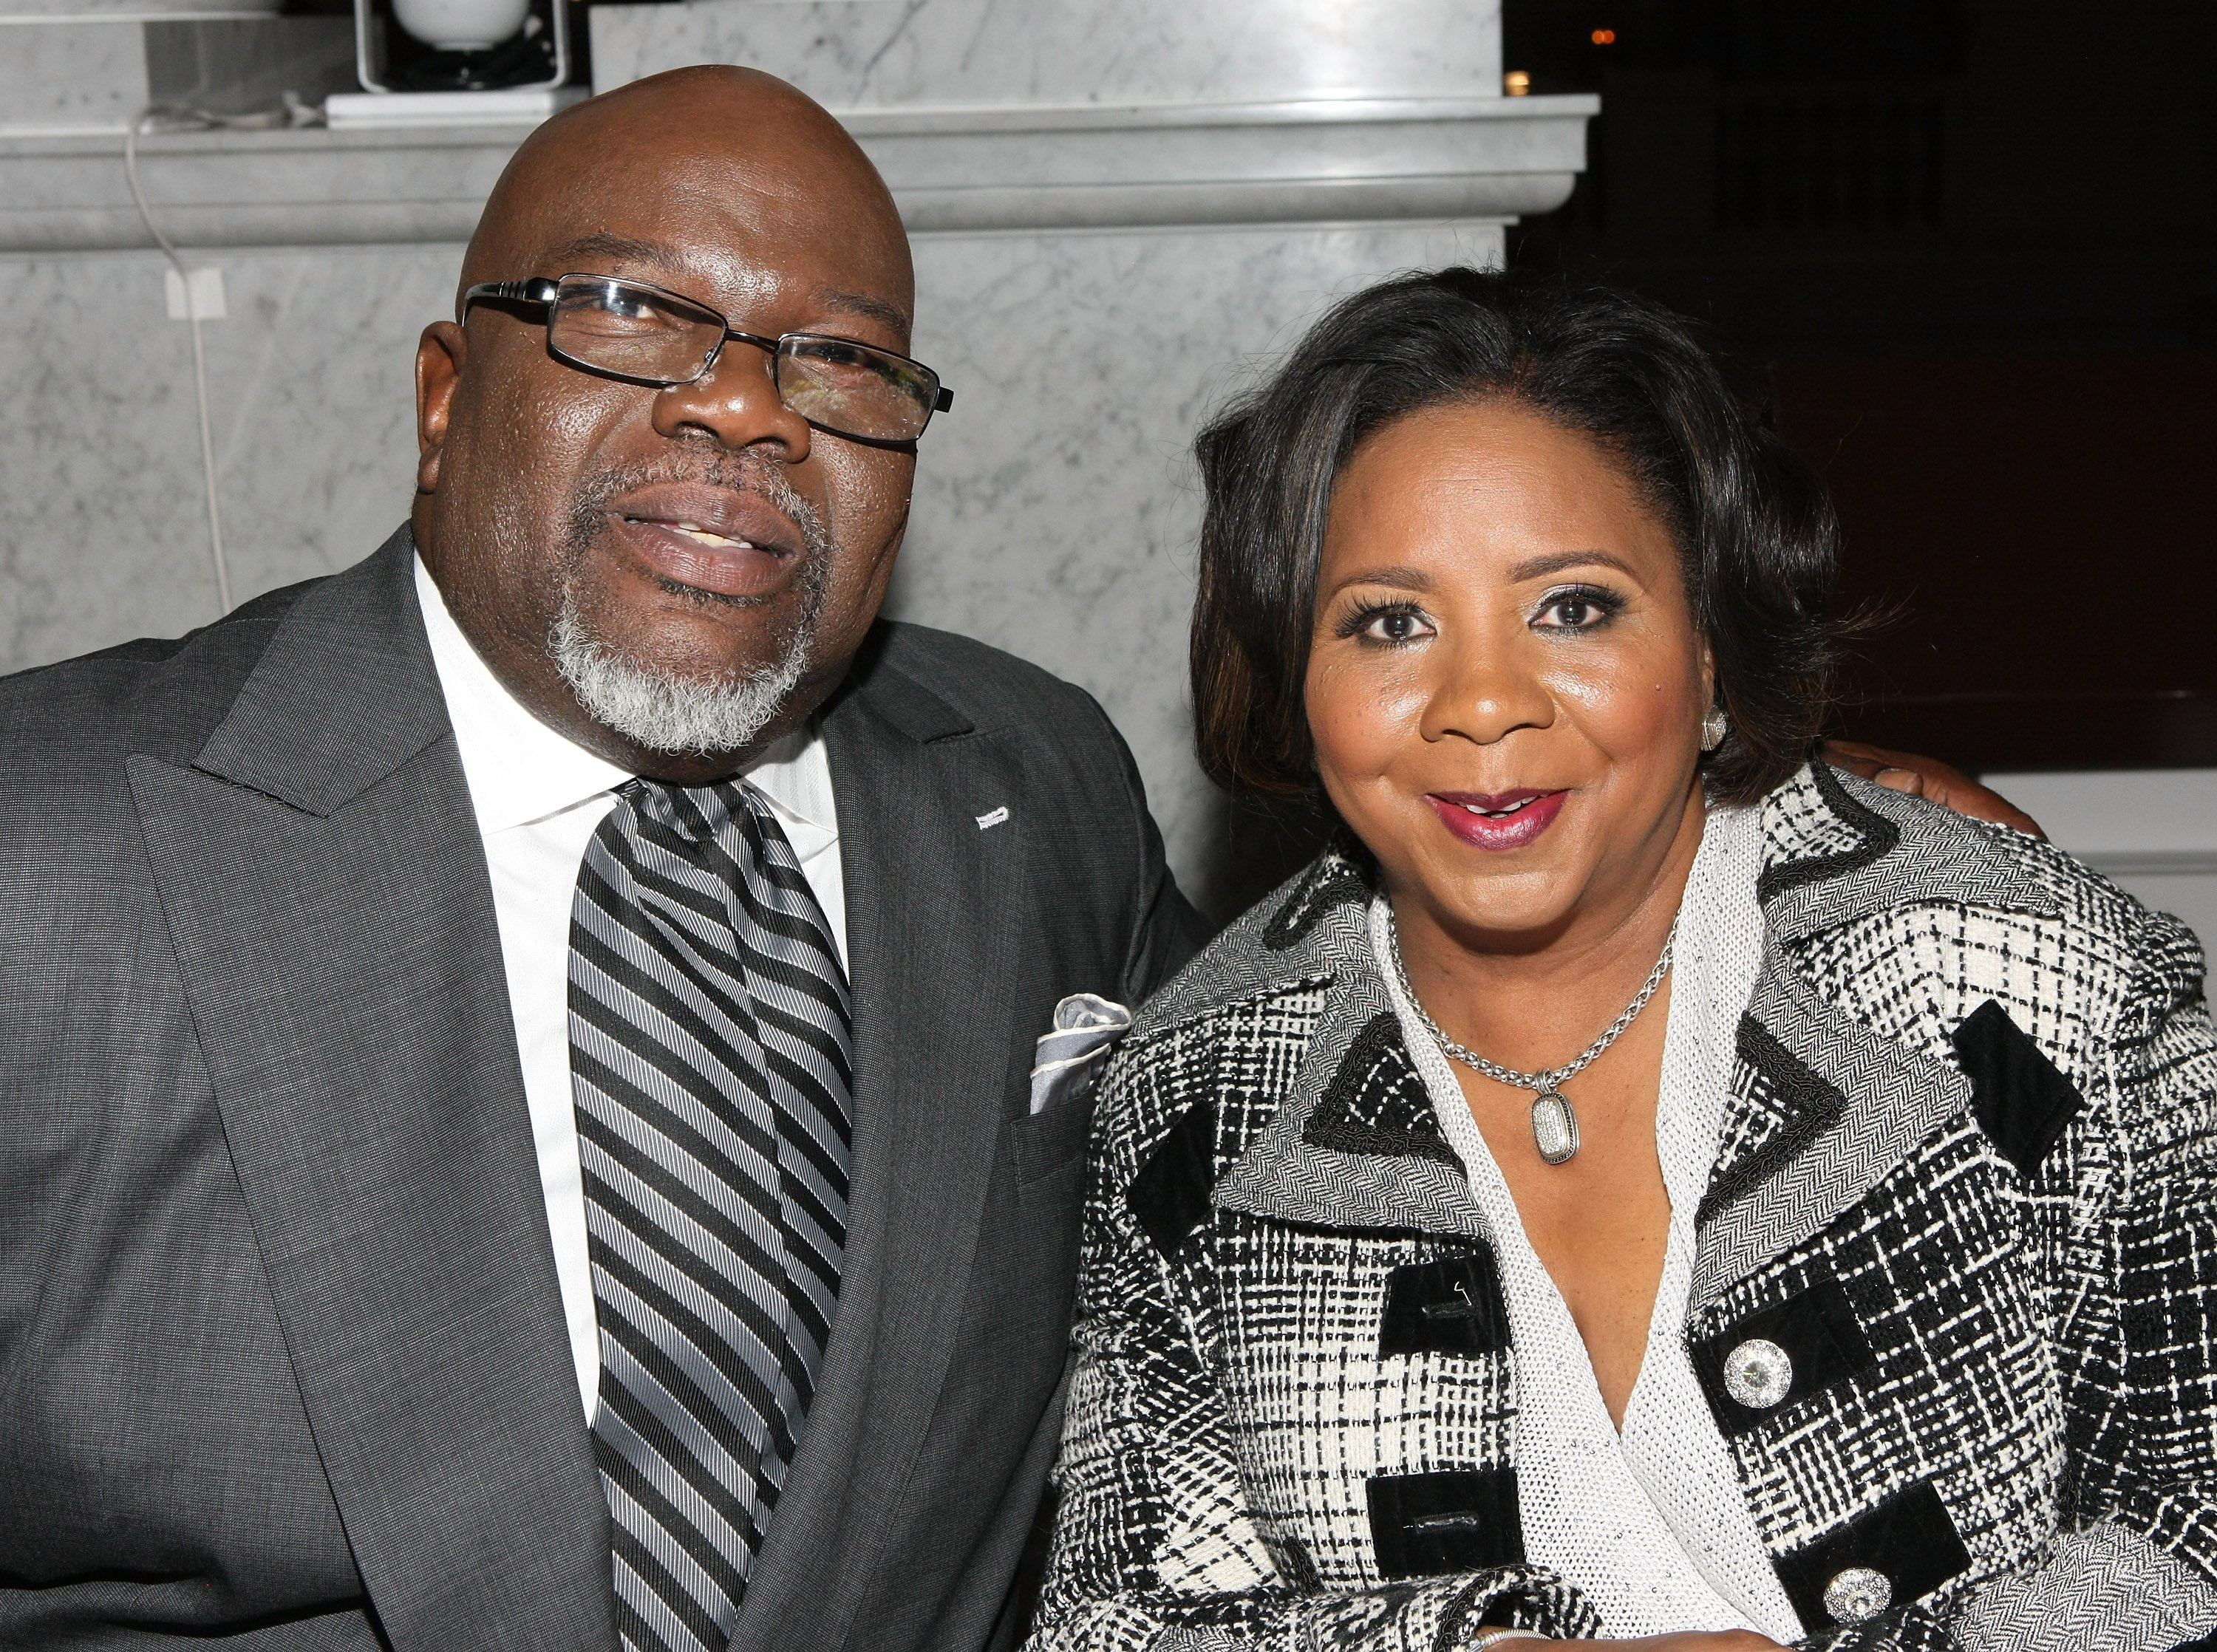 Bishop T. D. Jakes and his wife Serita Jakes at the BET Honors 2013  | Photo: Getty Images